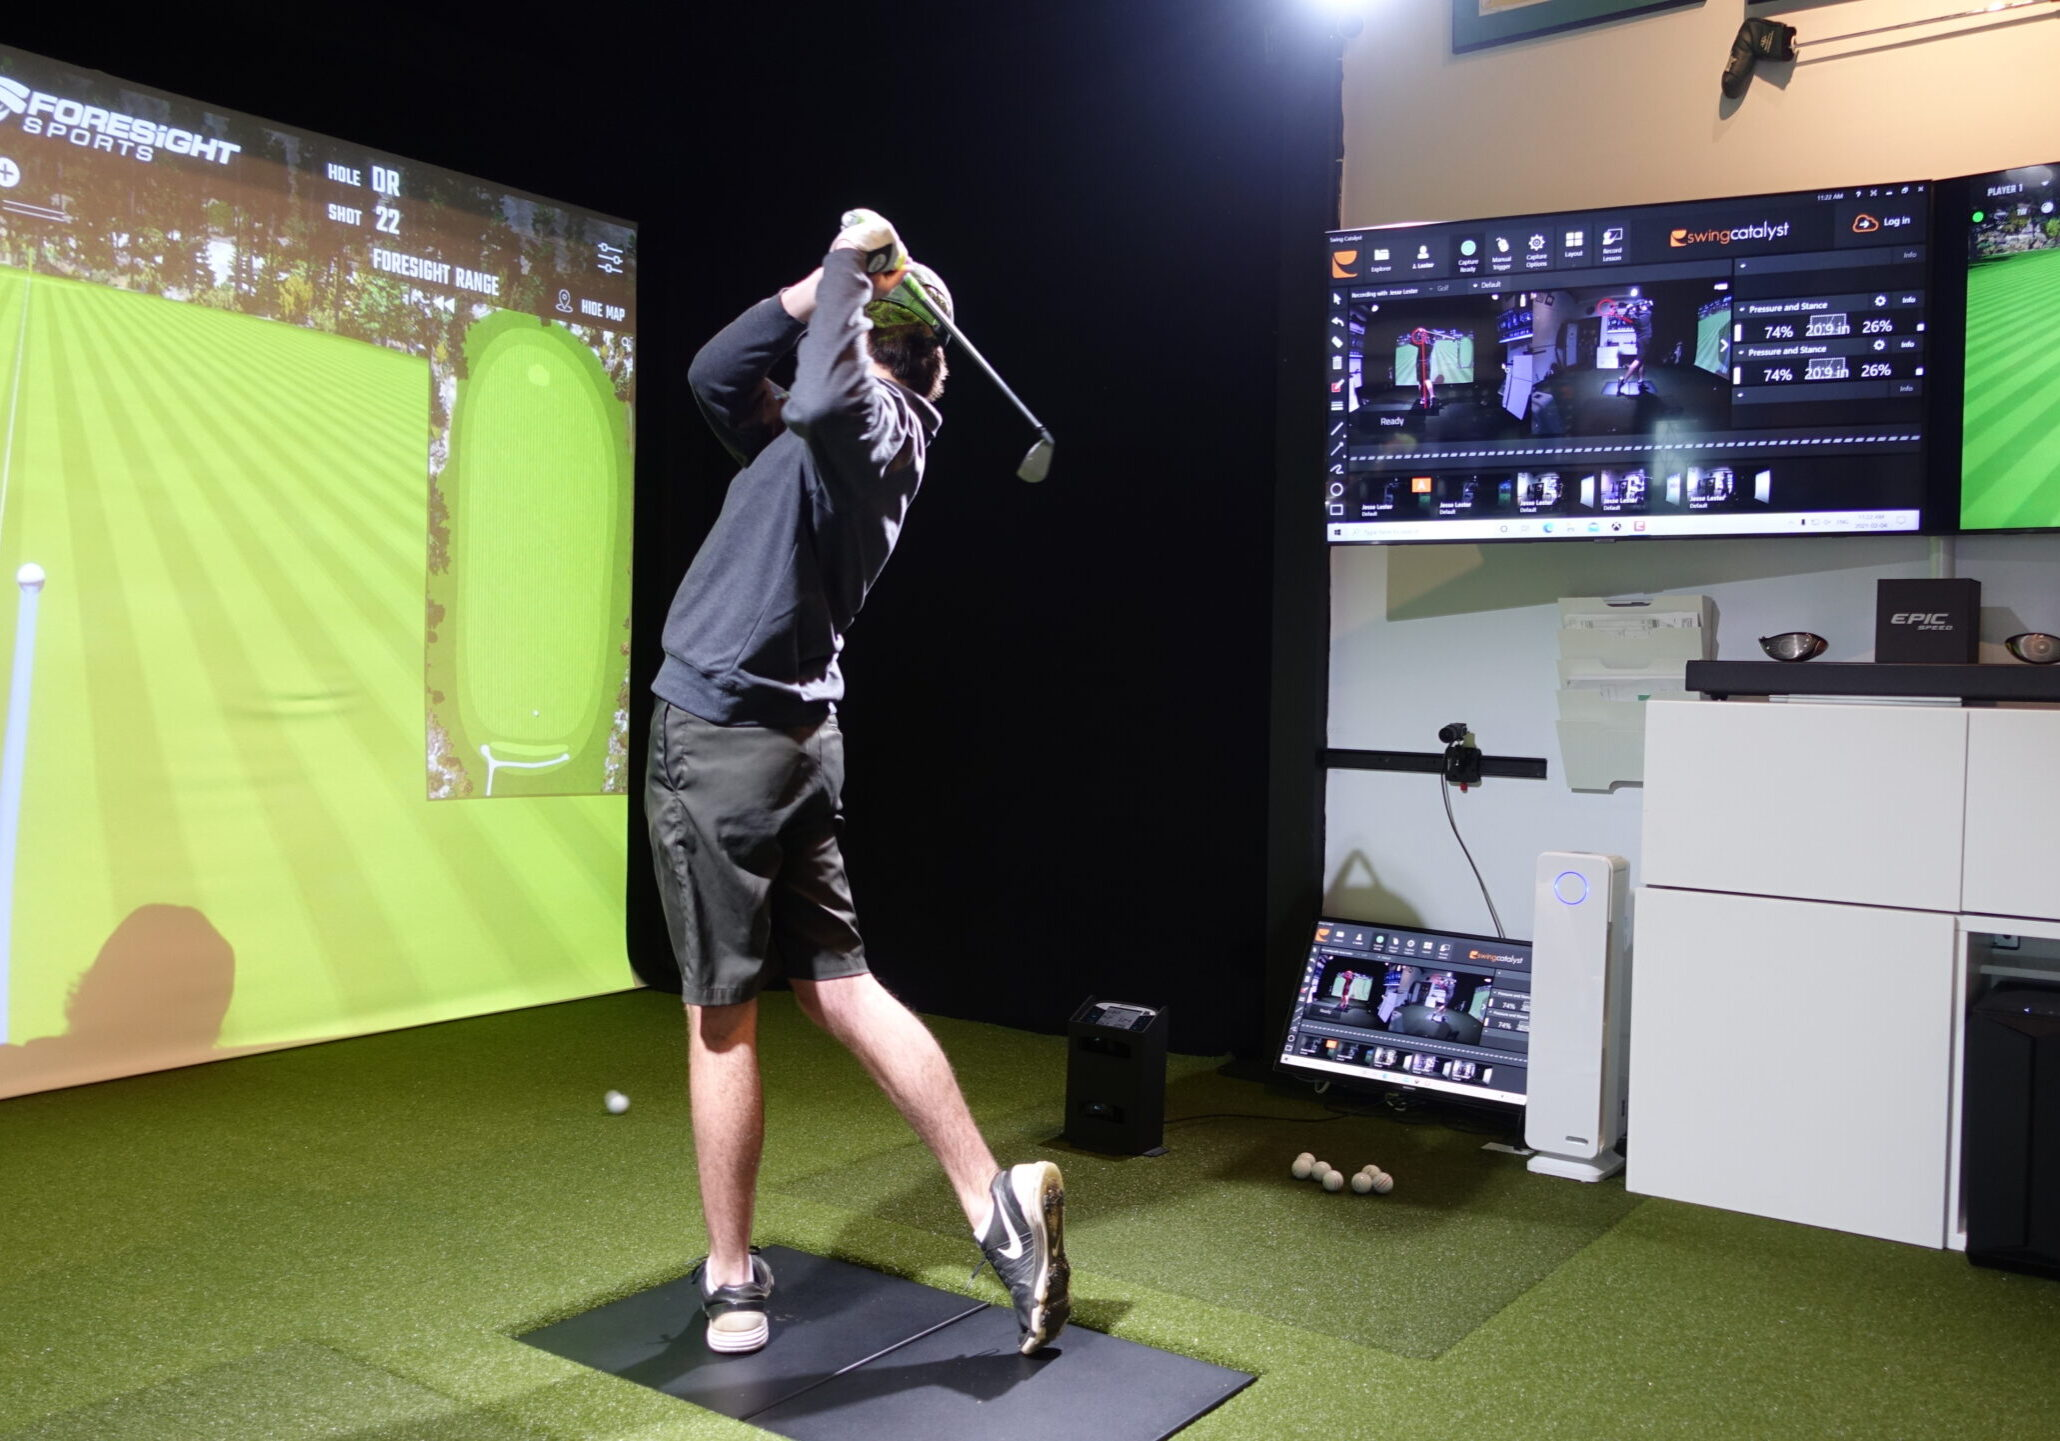 LAGO GOLF ACADEMY GOLF PERFORMANCE LAB